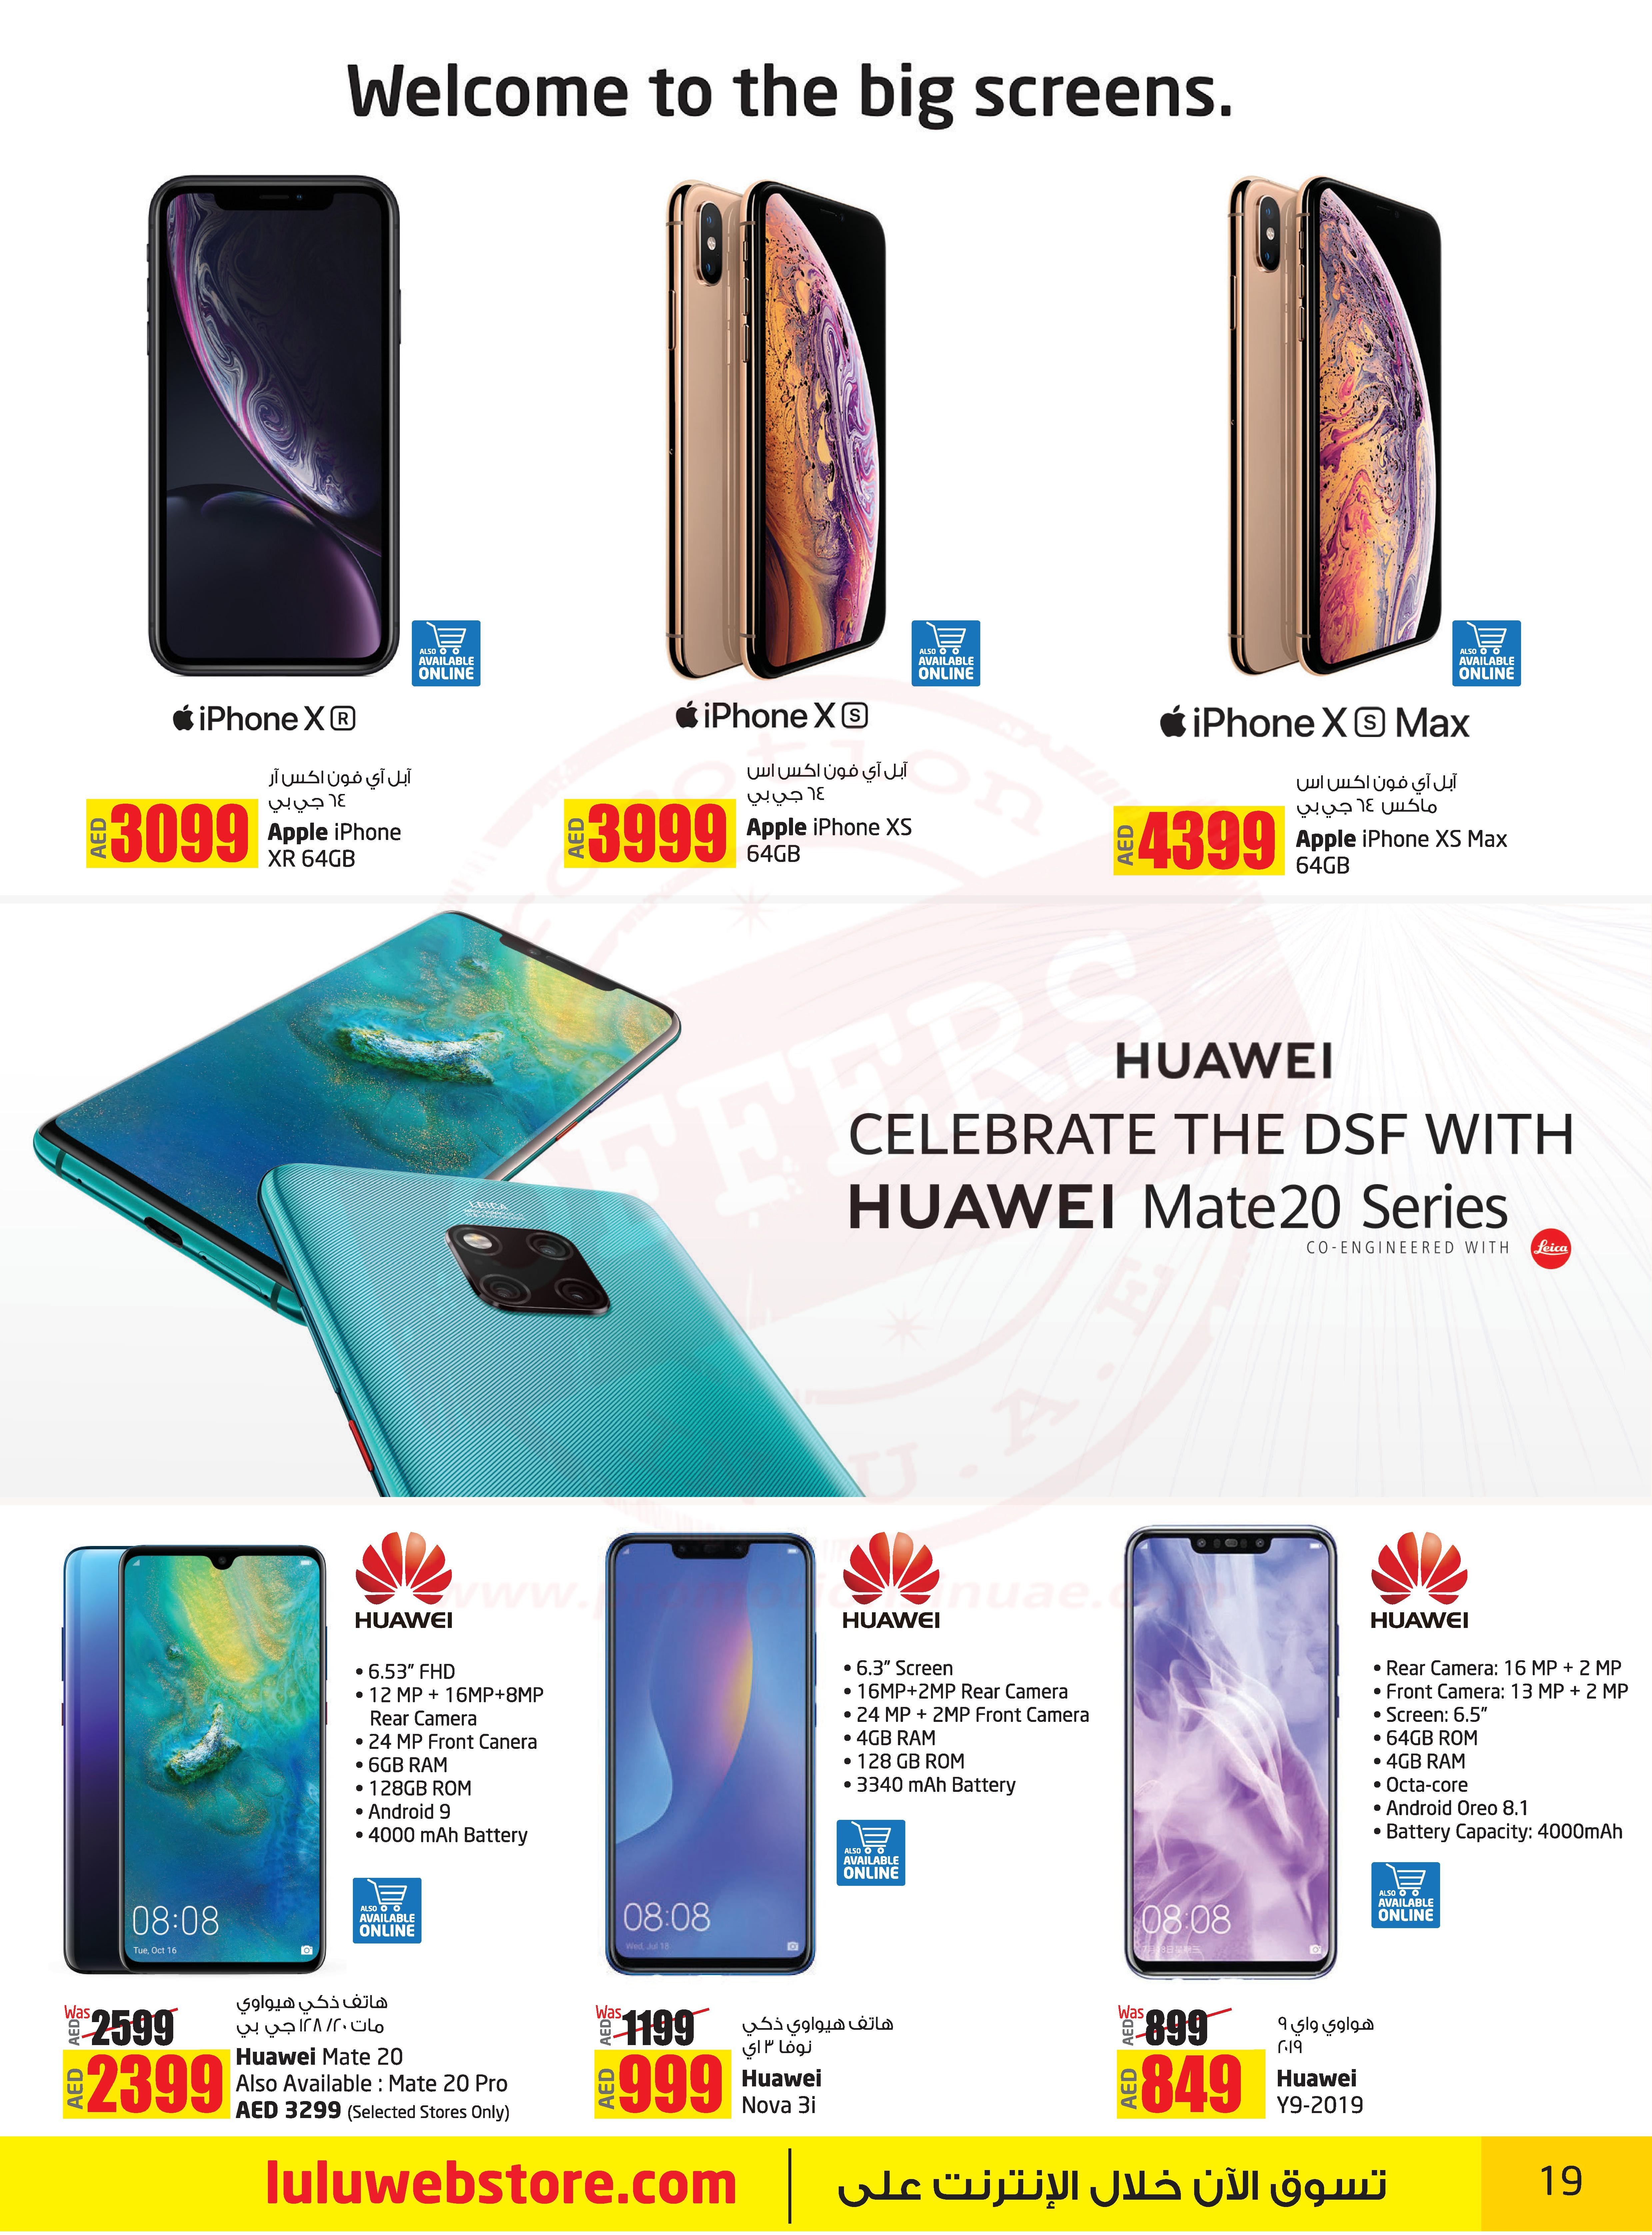 Huawei Y9 2019 Price In Uae Sharaf Dg | Belgium Hotels 5 Star